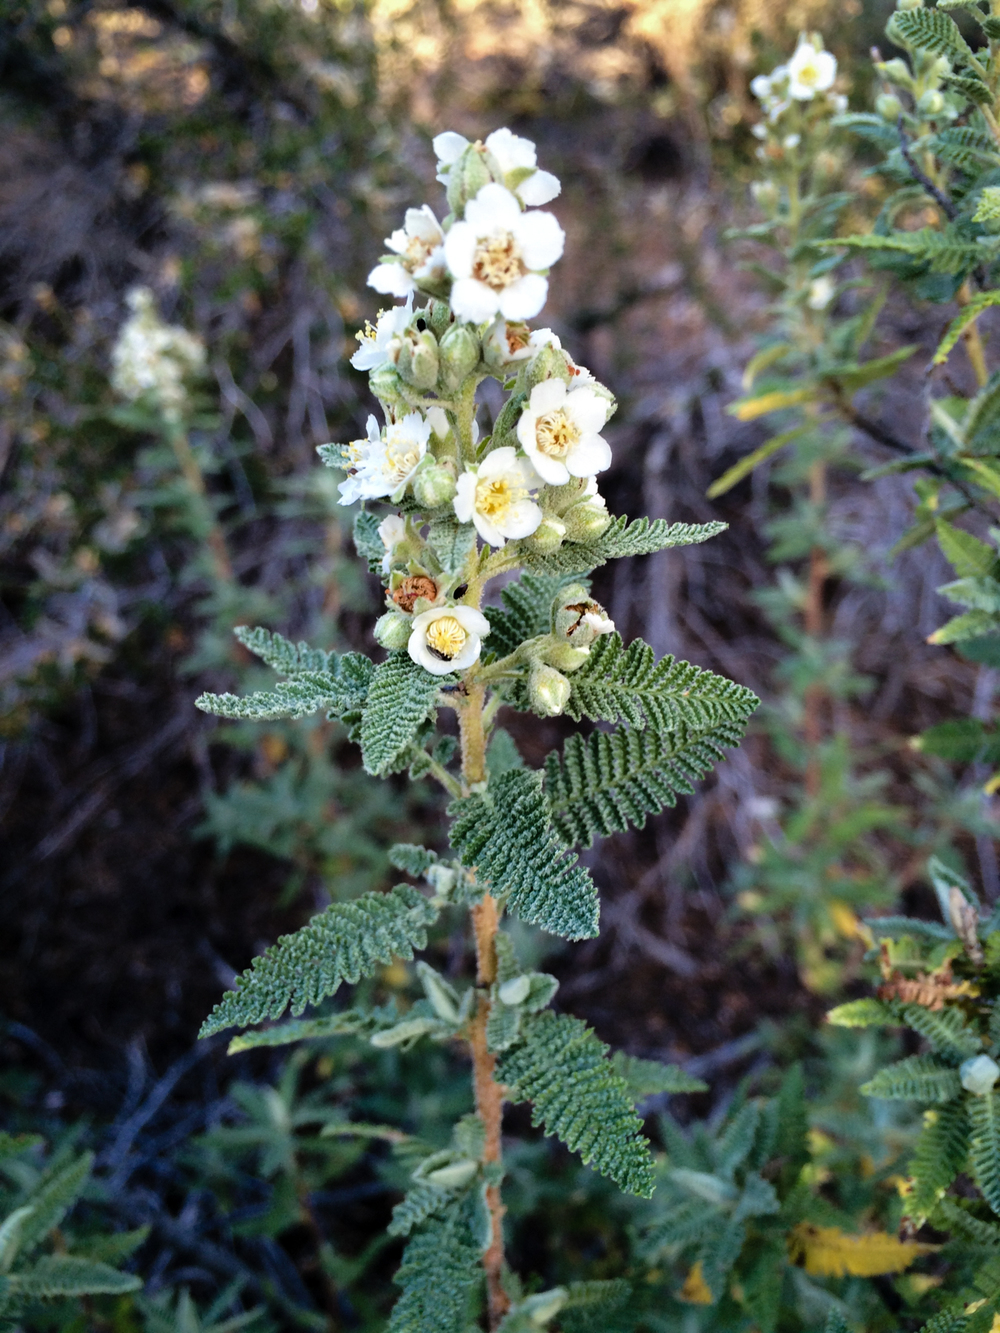 Fernbush. North Rim, Grand Canyon National Park, Arizona. September 2015.